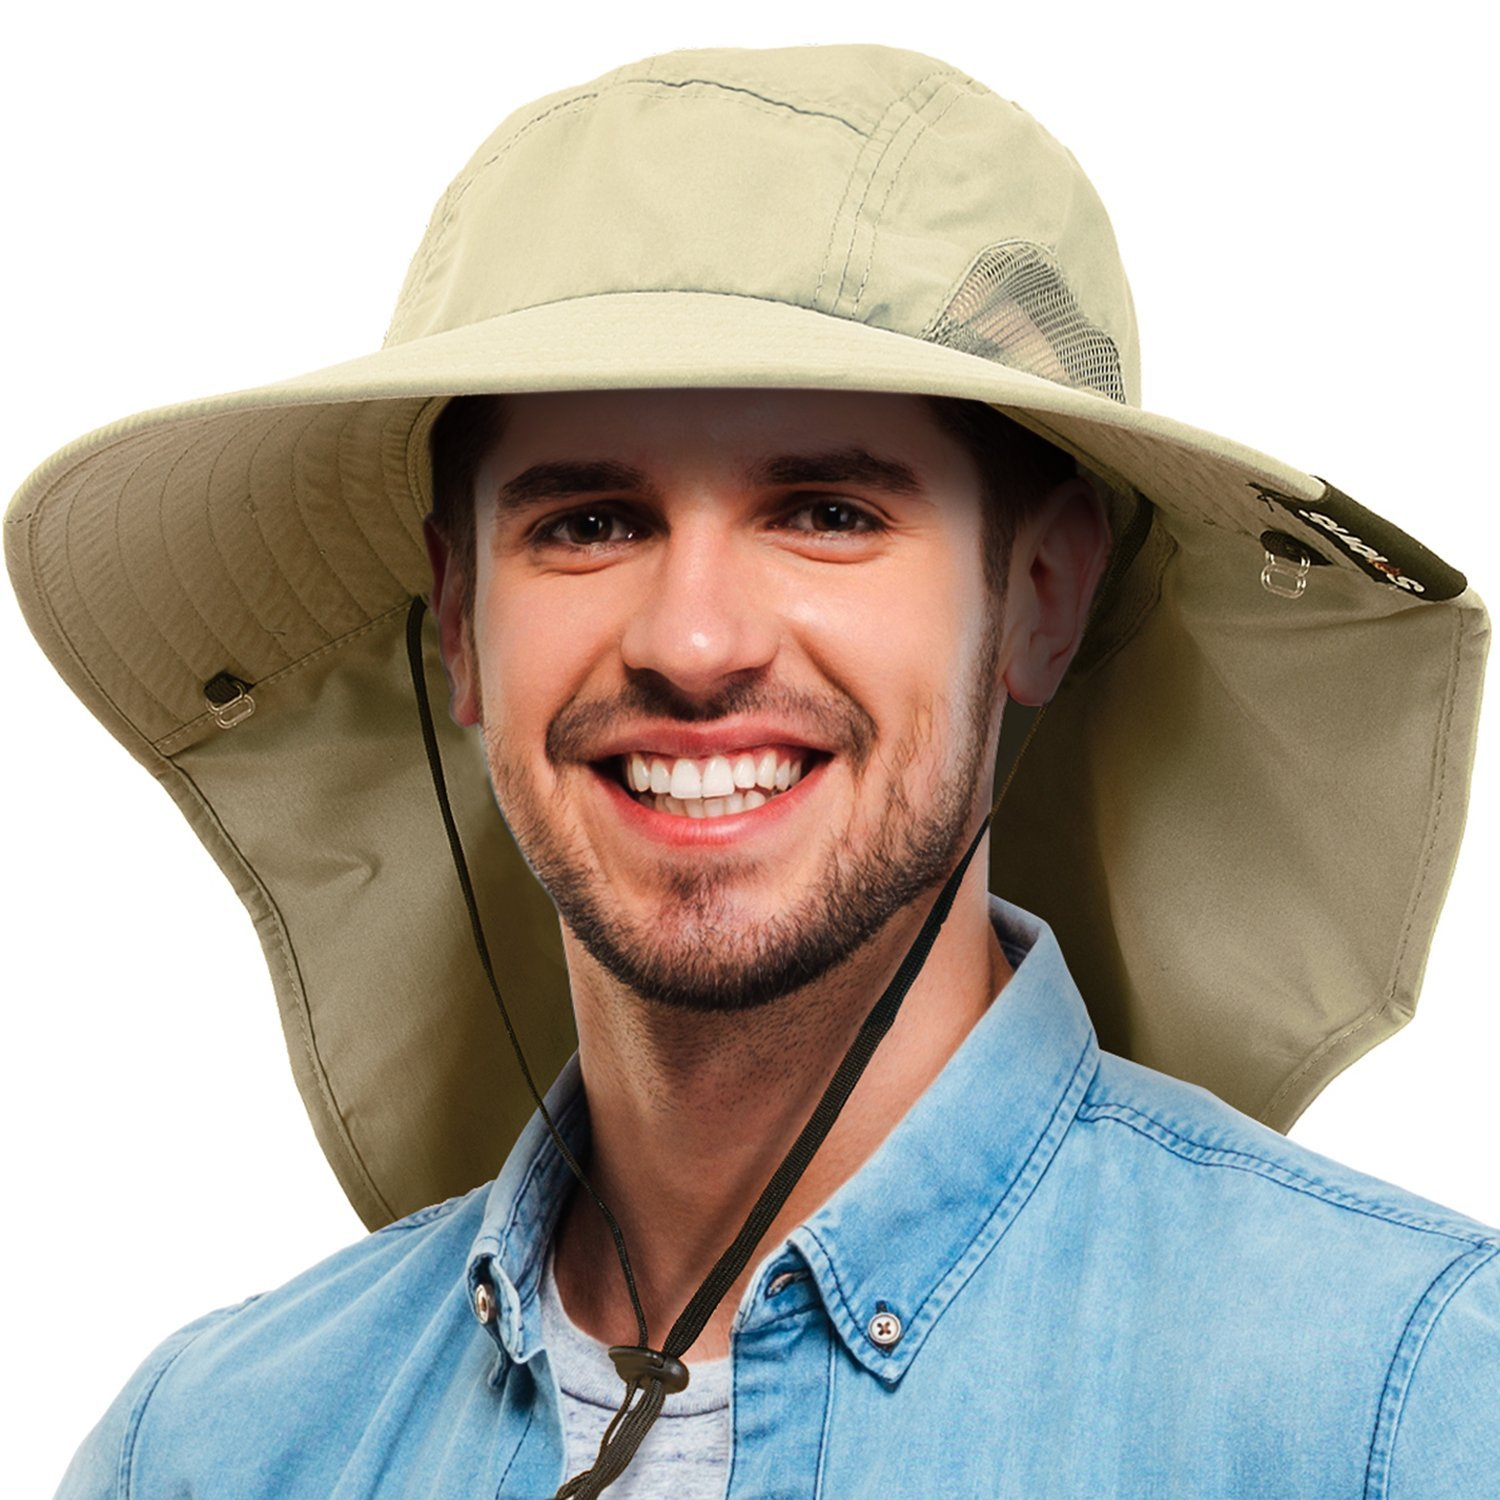 894507f025e45 Tirrinia Unisex Wide Brim Sun Hat with Neck Flap Fishing Safari Cap for Men  Women Outdoor